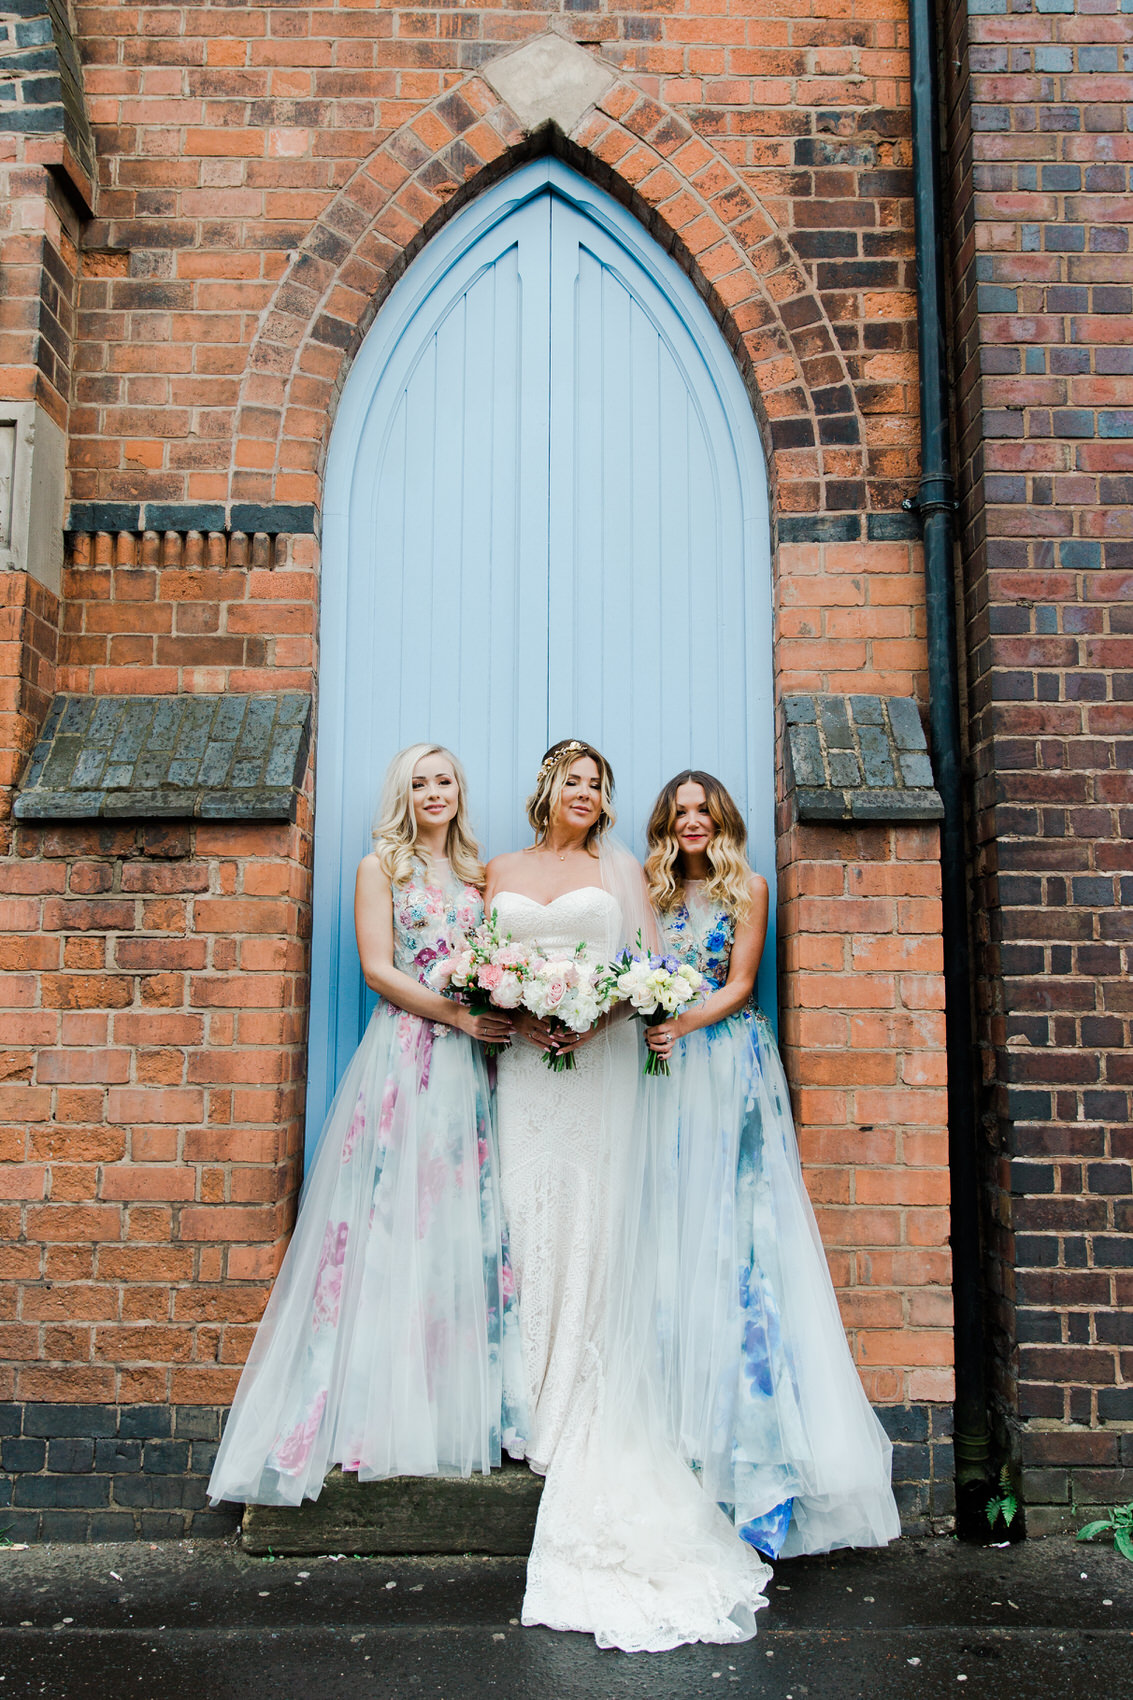 Glamorous Alternative Wedding at Fazeley Studios053